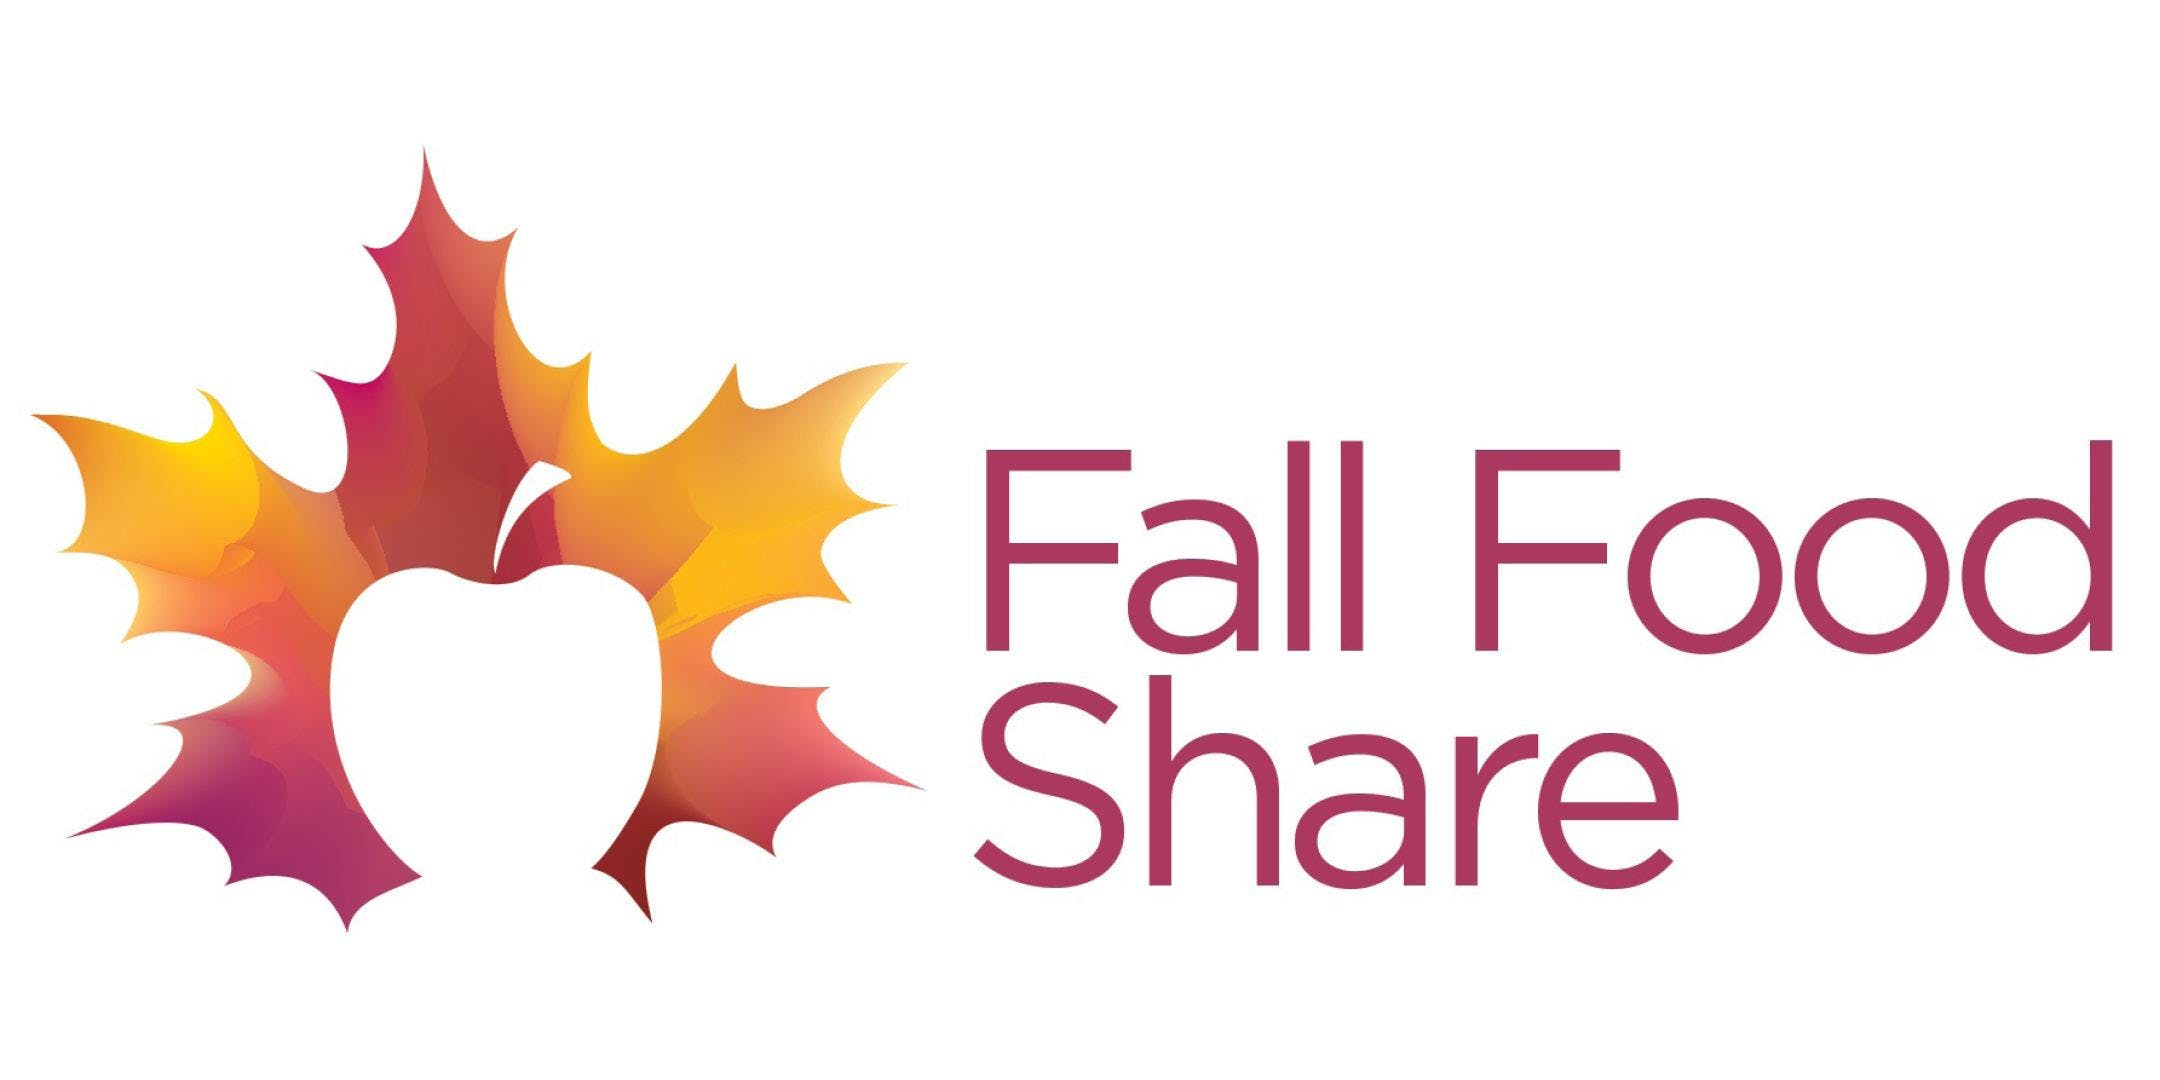 2018 Fall Food Share - Bethel Park Giant Eagle - 27 OCT 2018